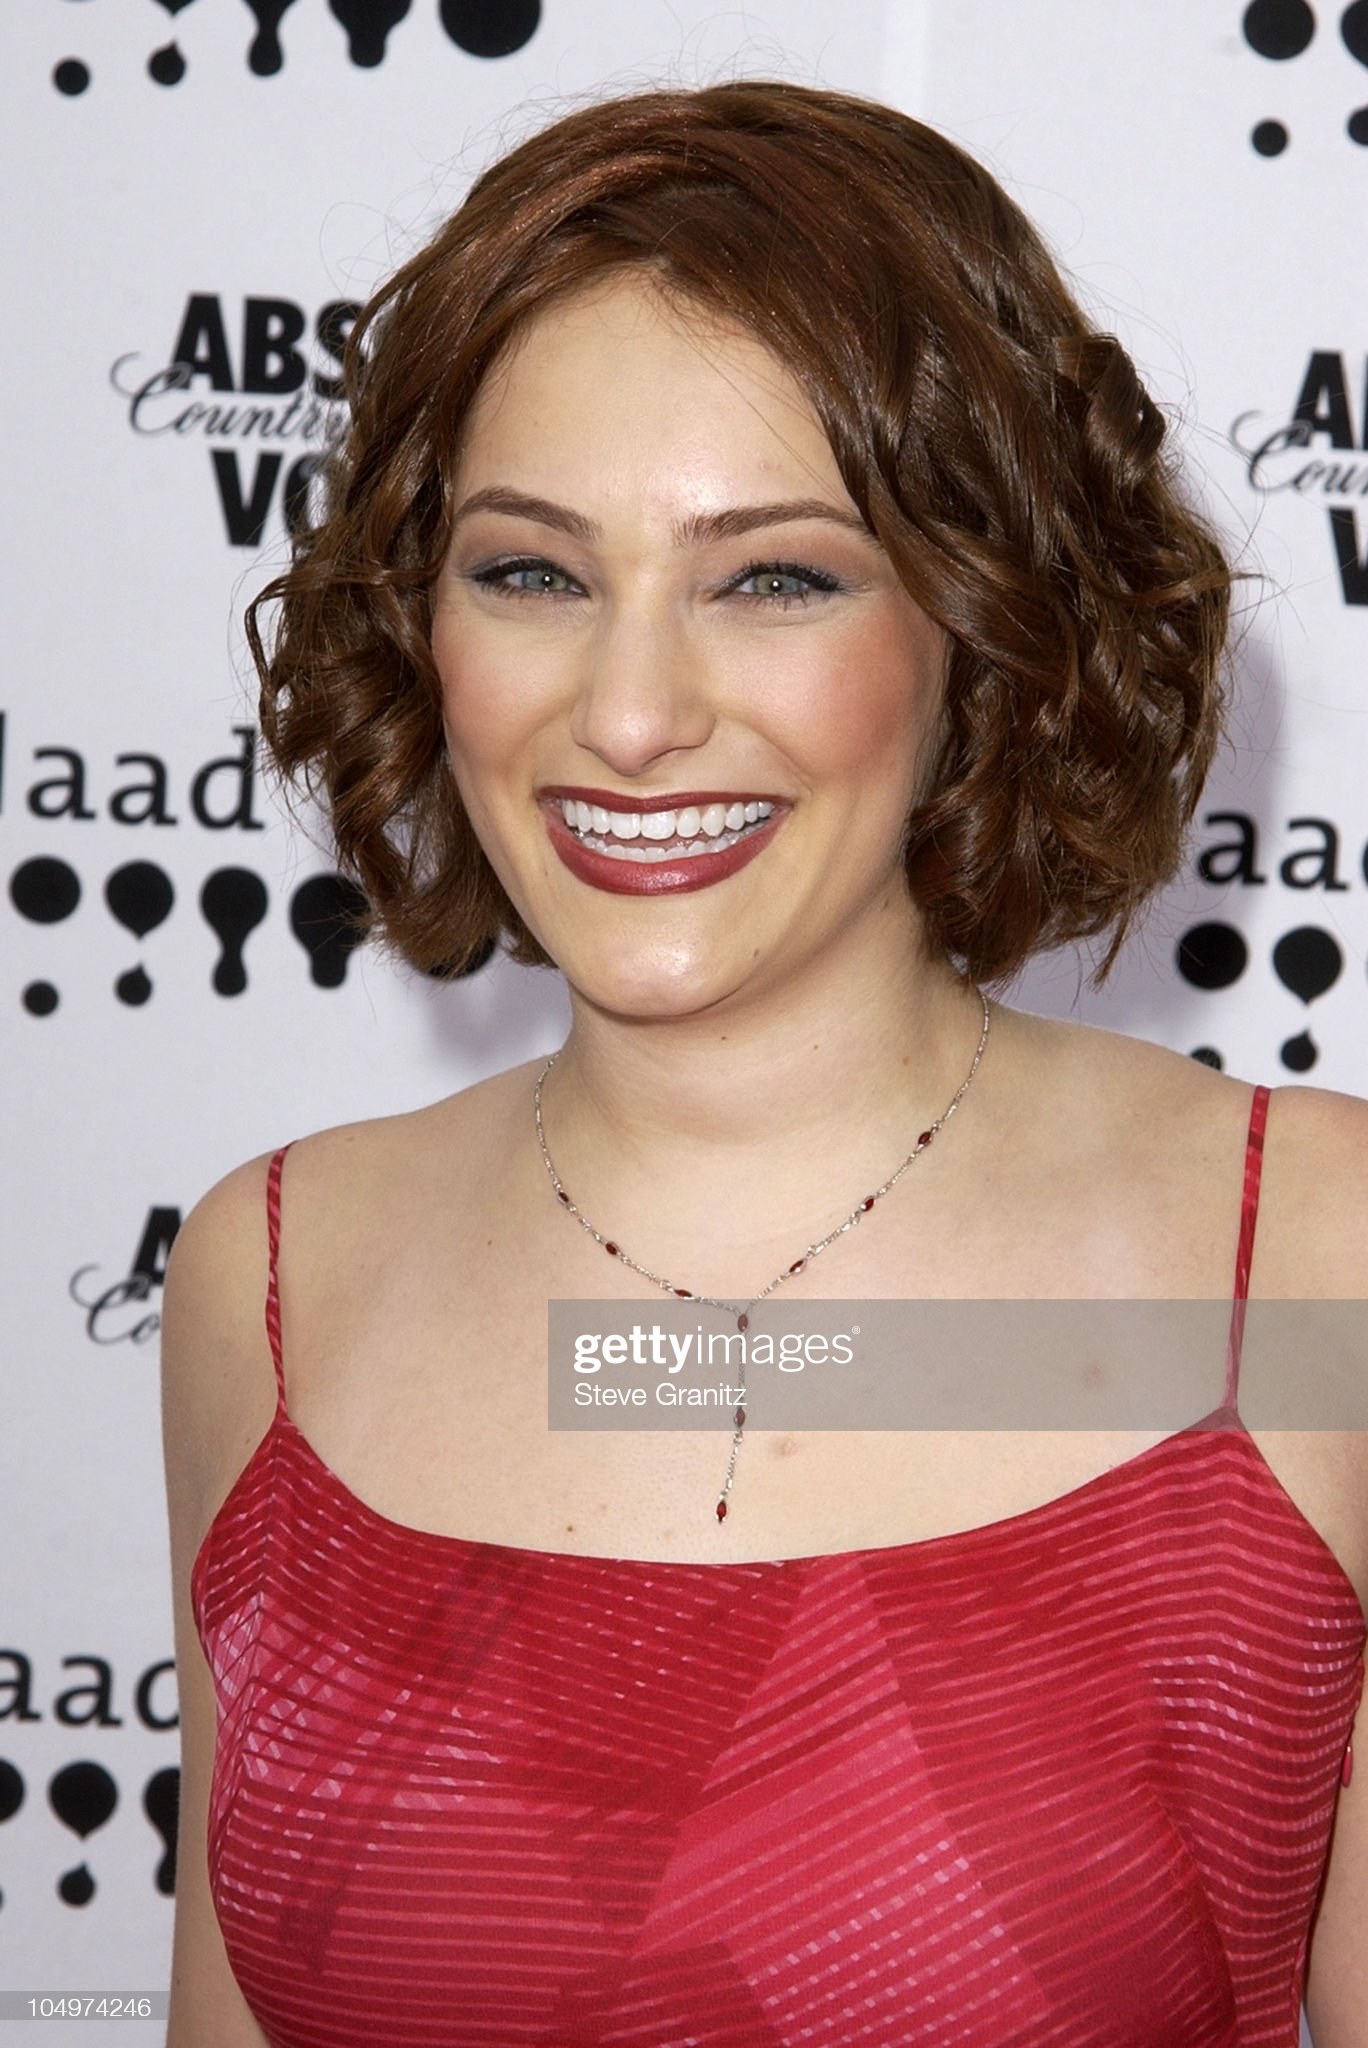 ¿Cuánto mide Rachel Roth? - Altura - Real height Rachel-roth-during-the-13th-annual-glaad-media-awards-los-angeles-at-picture-id104974246?s=2048x2048